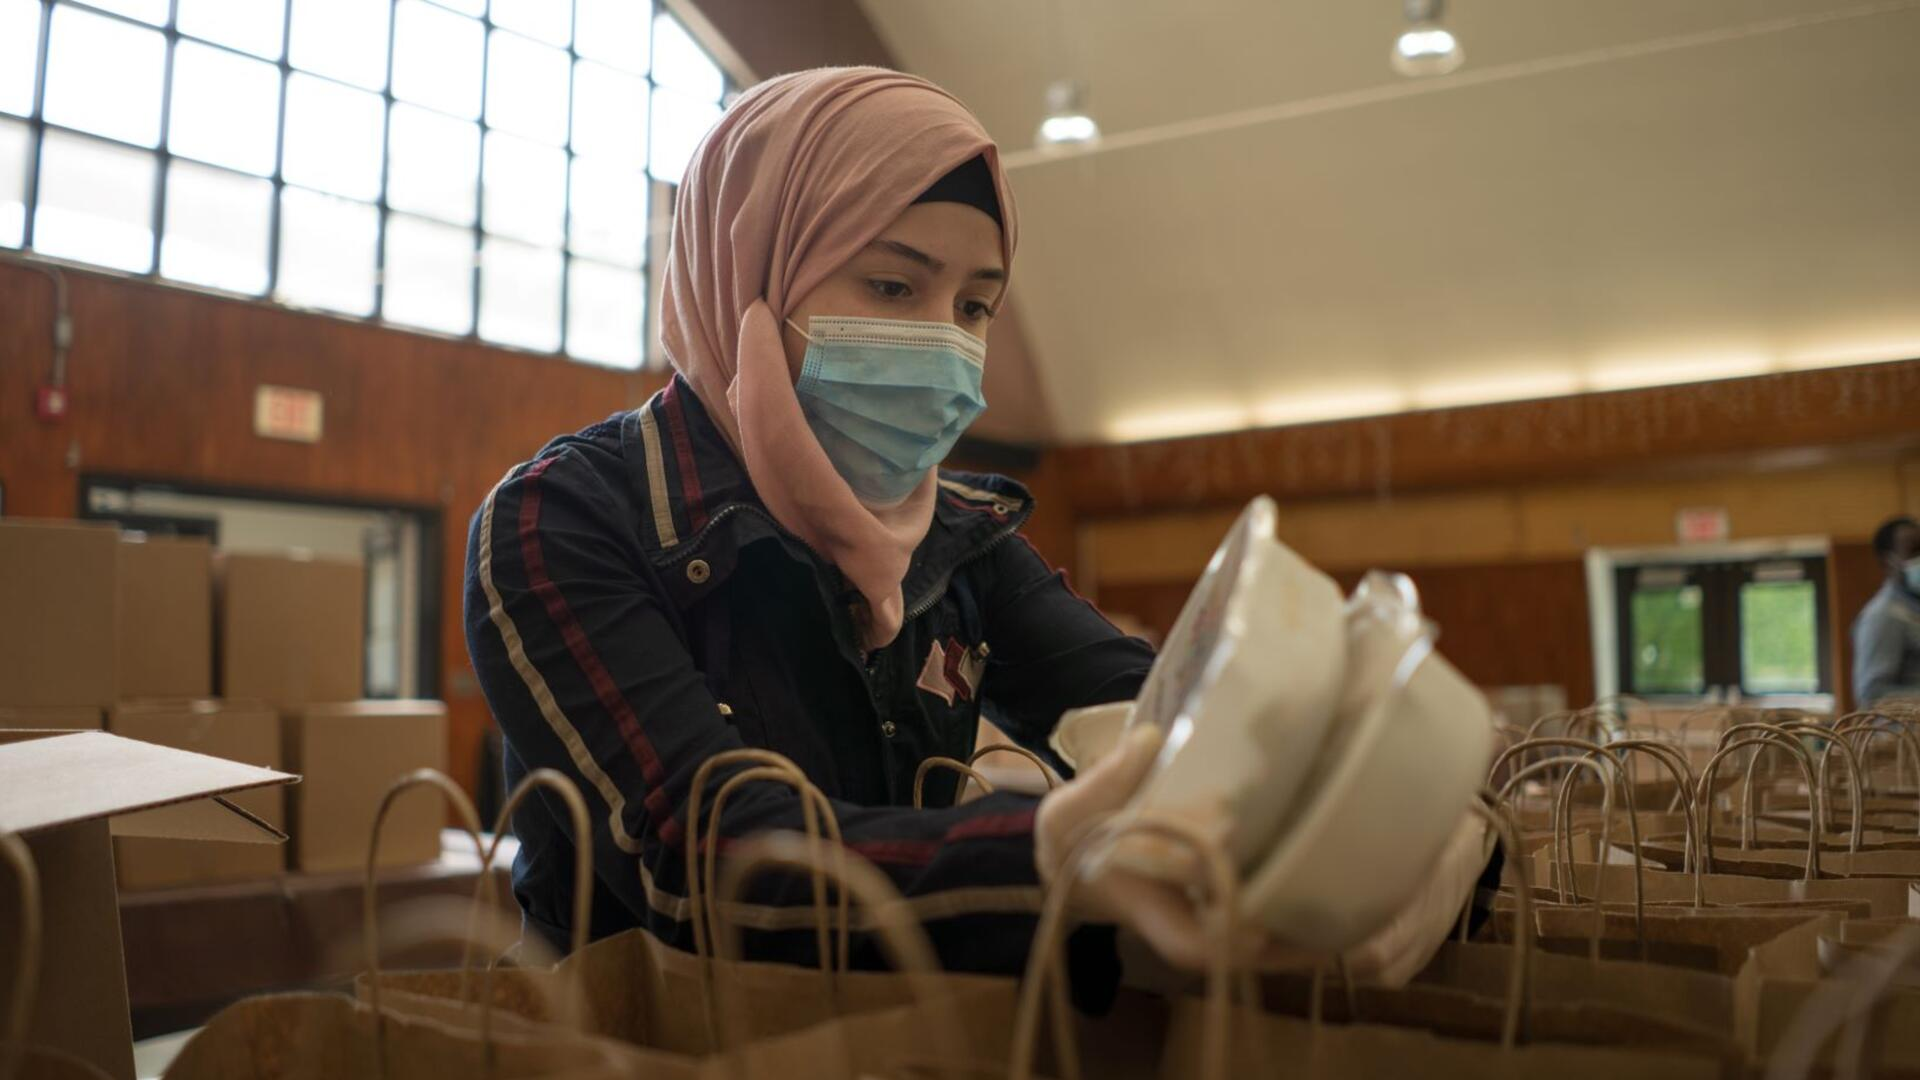 Rania Abou, wearing a mask, puts two containers of food inside paper bags to be given away as part of her work with the IRC and World Central Kitchen.